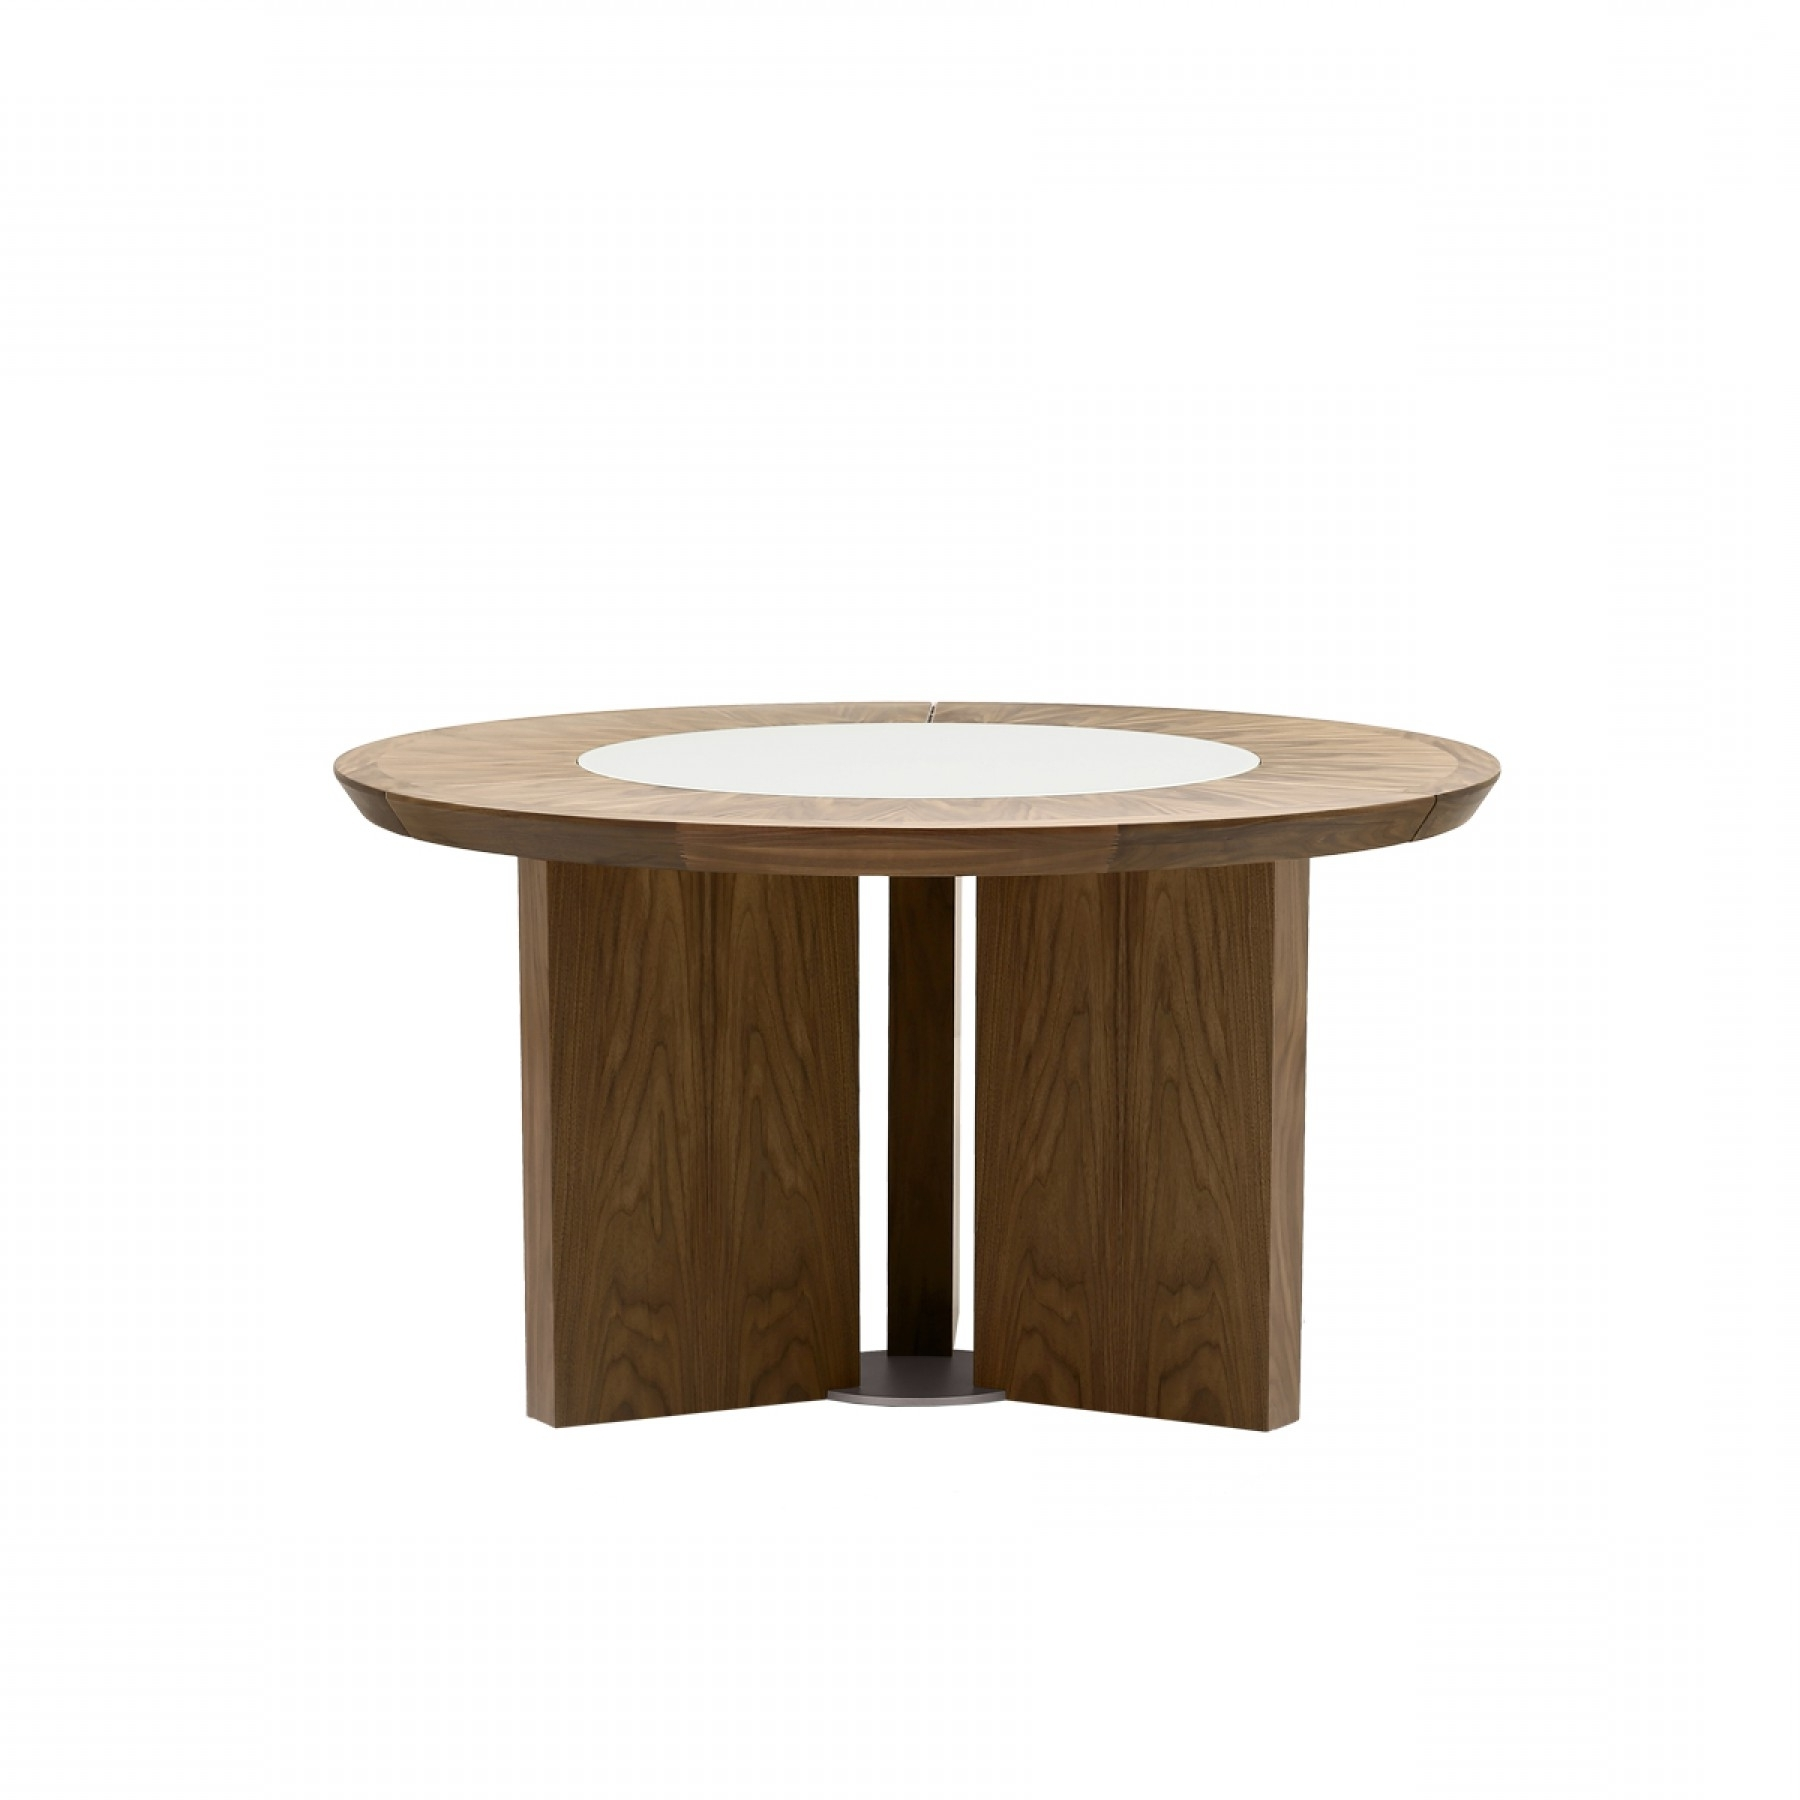 Famous Perth Dining Tables Within Midollo Walnut Round Dining Table – Beyond Furniture (View 6 of 25)